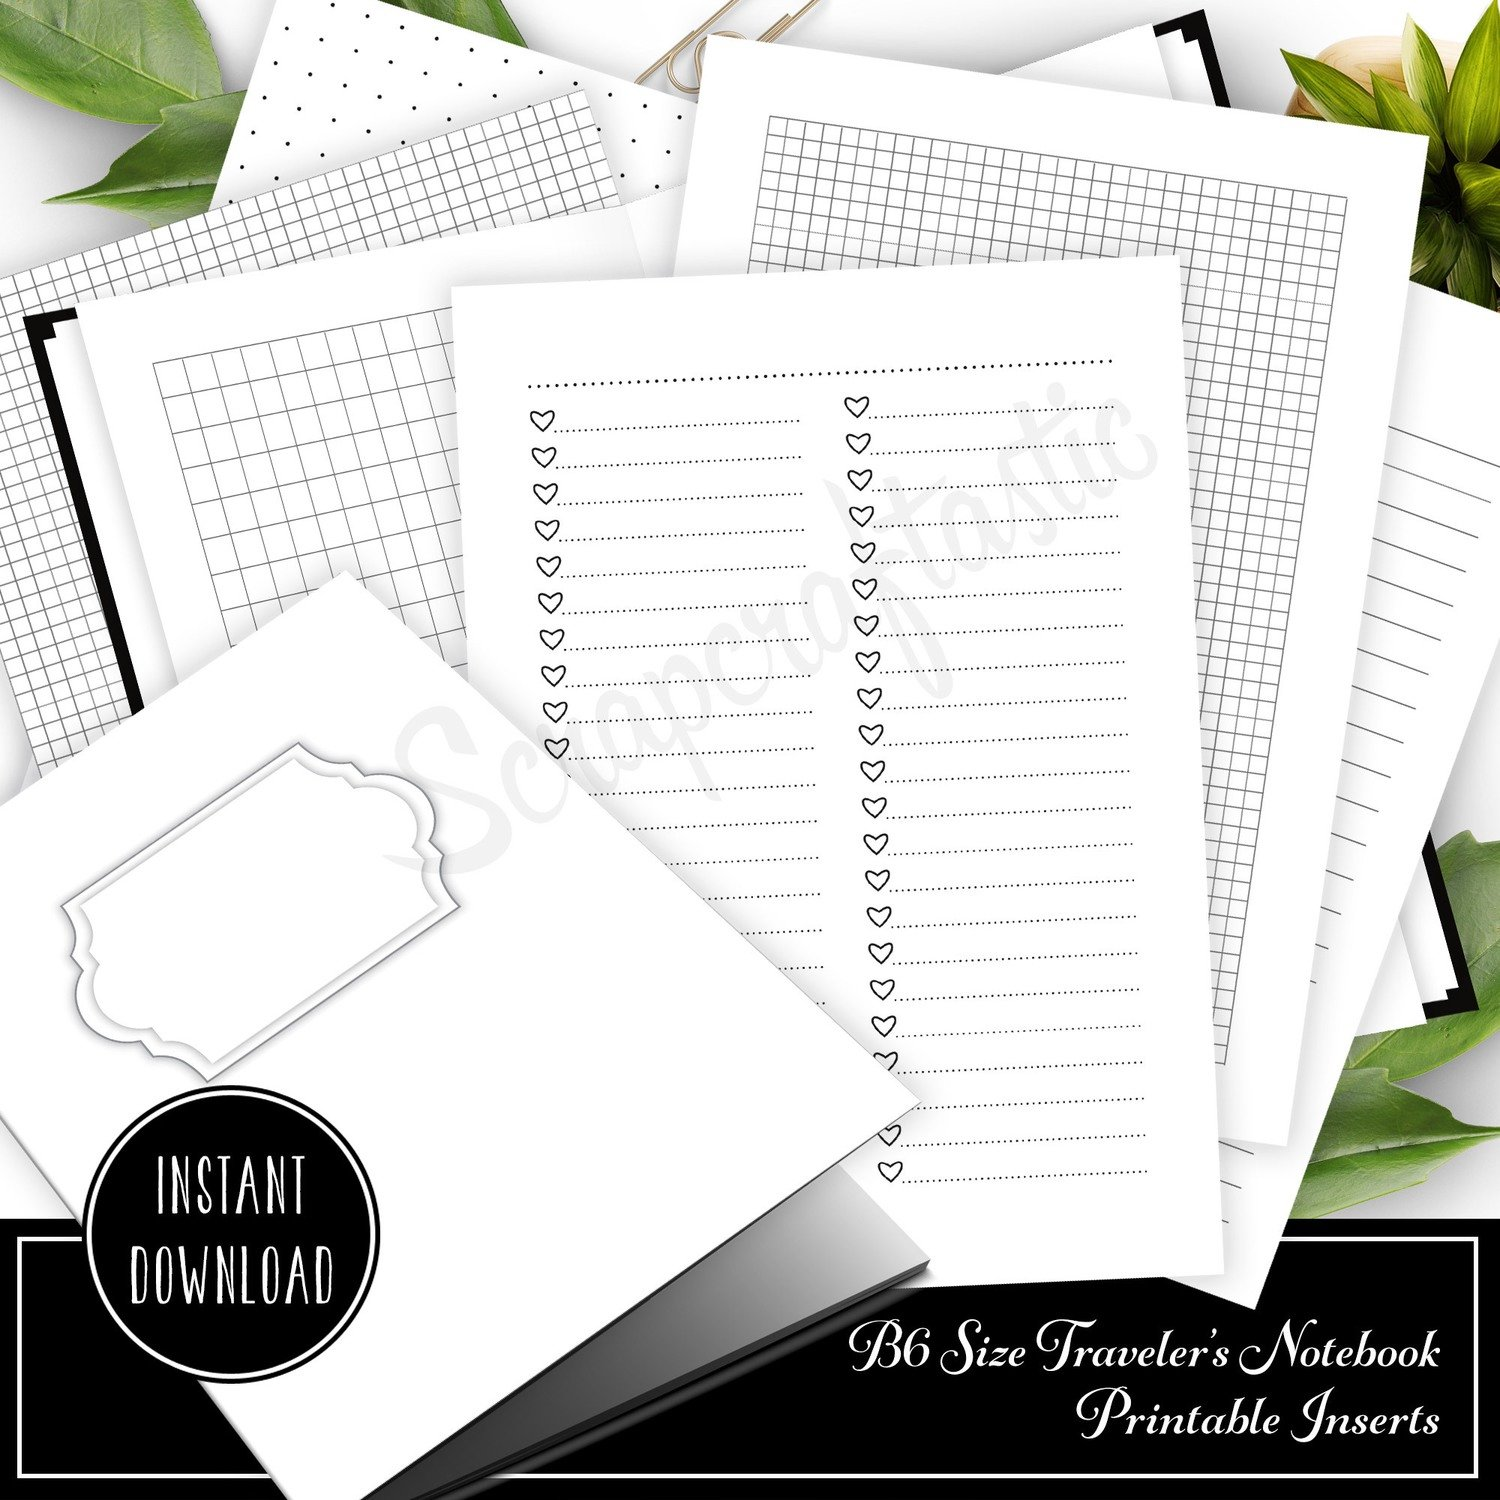 The Basics B6 Traveler's Notebook Printable Inserts - Cover, Checklists, Grids, Dot Grids, Lined and Blank Inserts